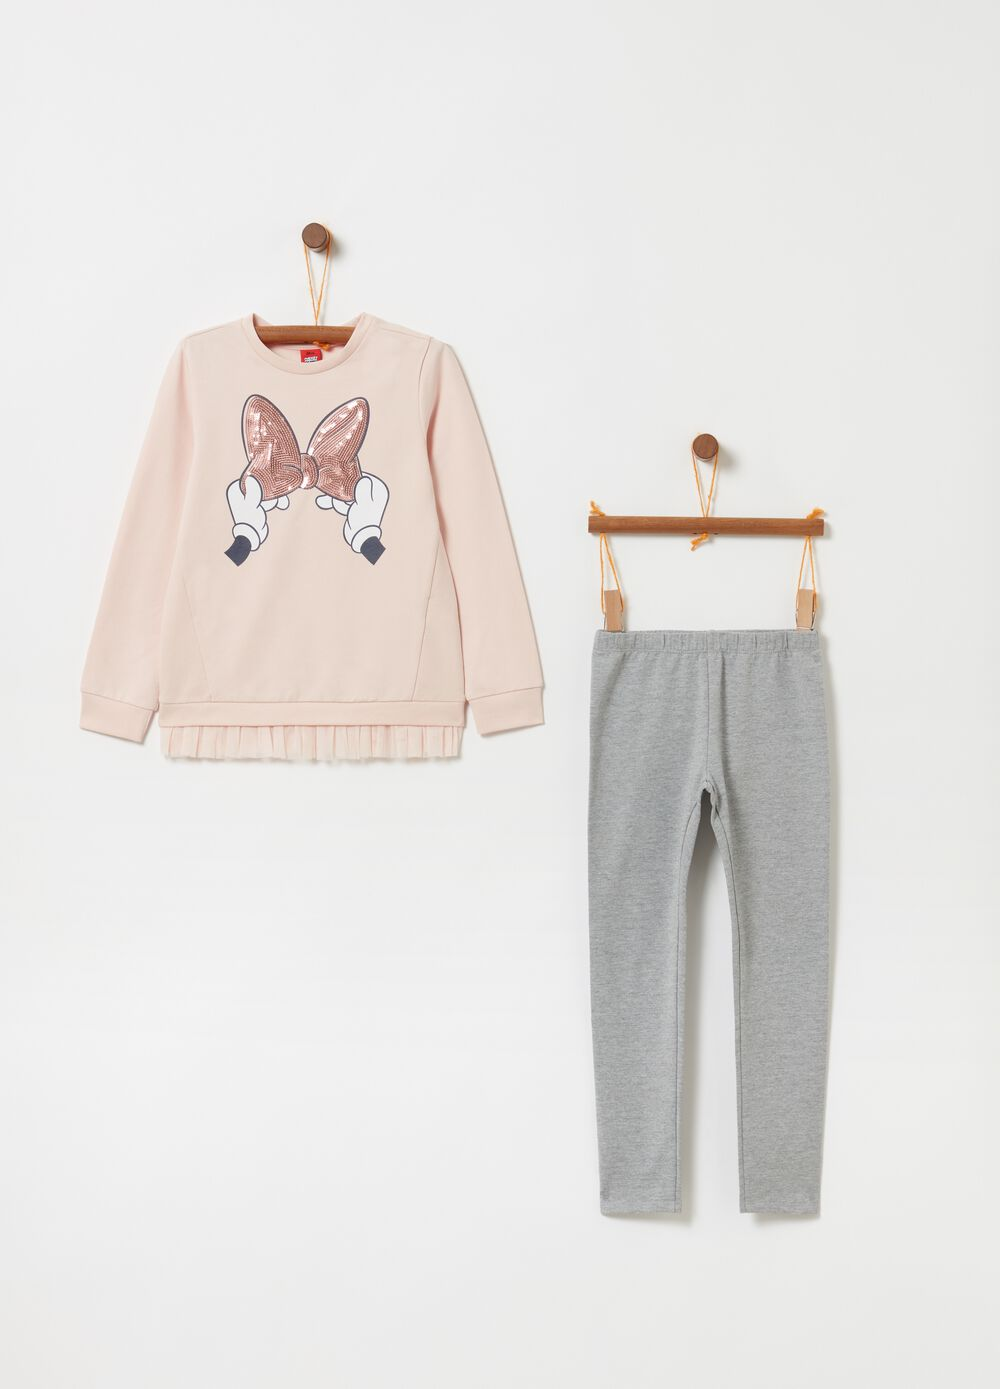 Jogging set with Disney Minnie Mouse print